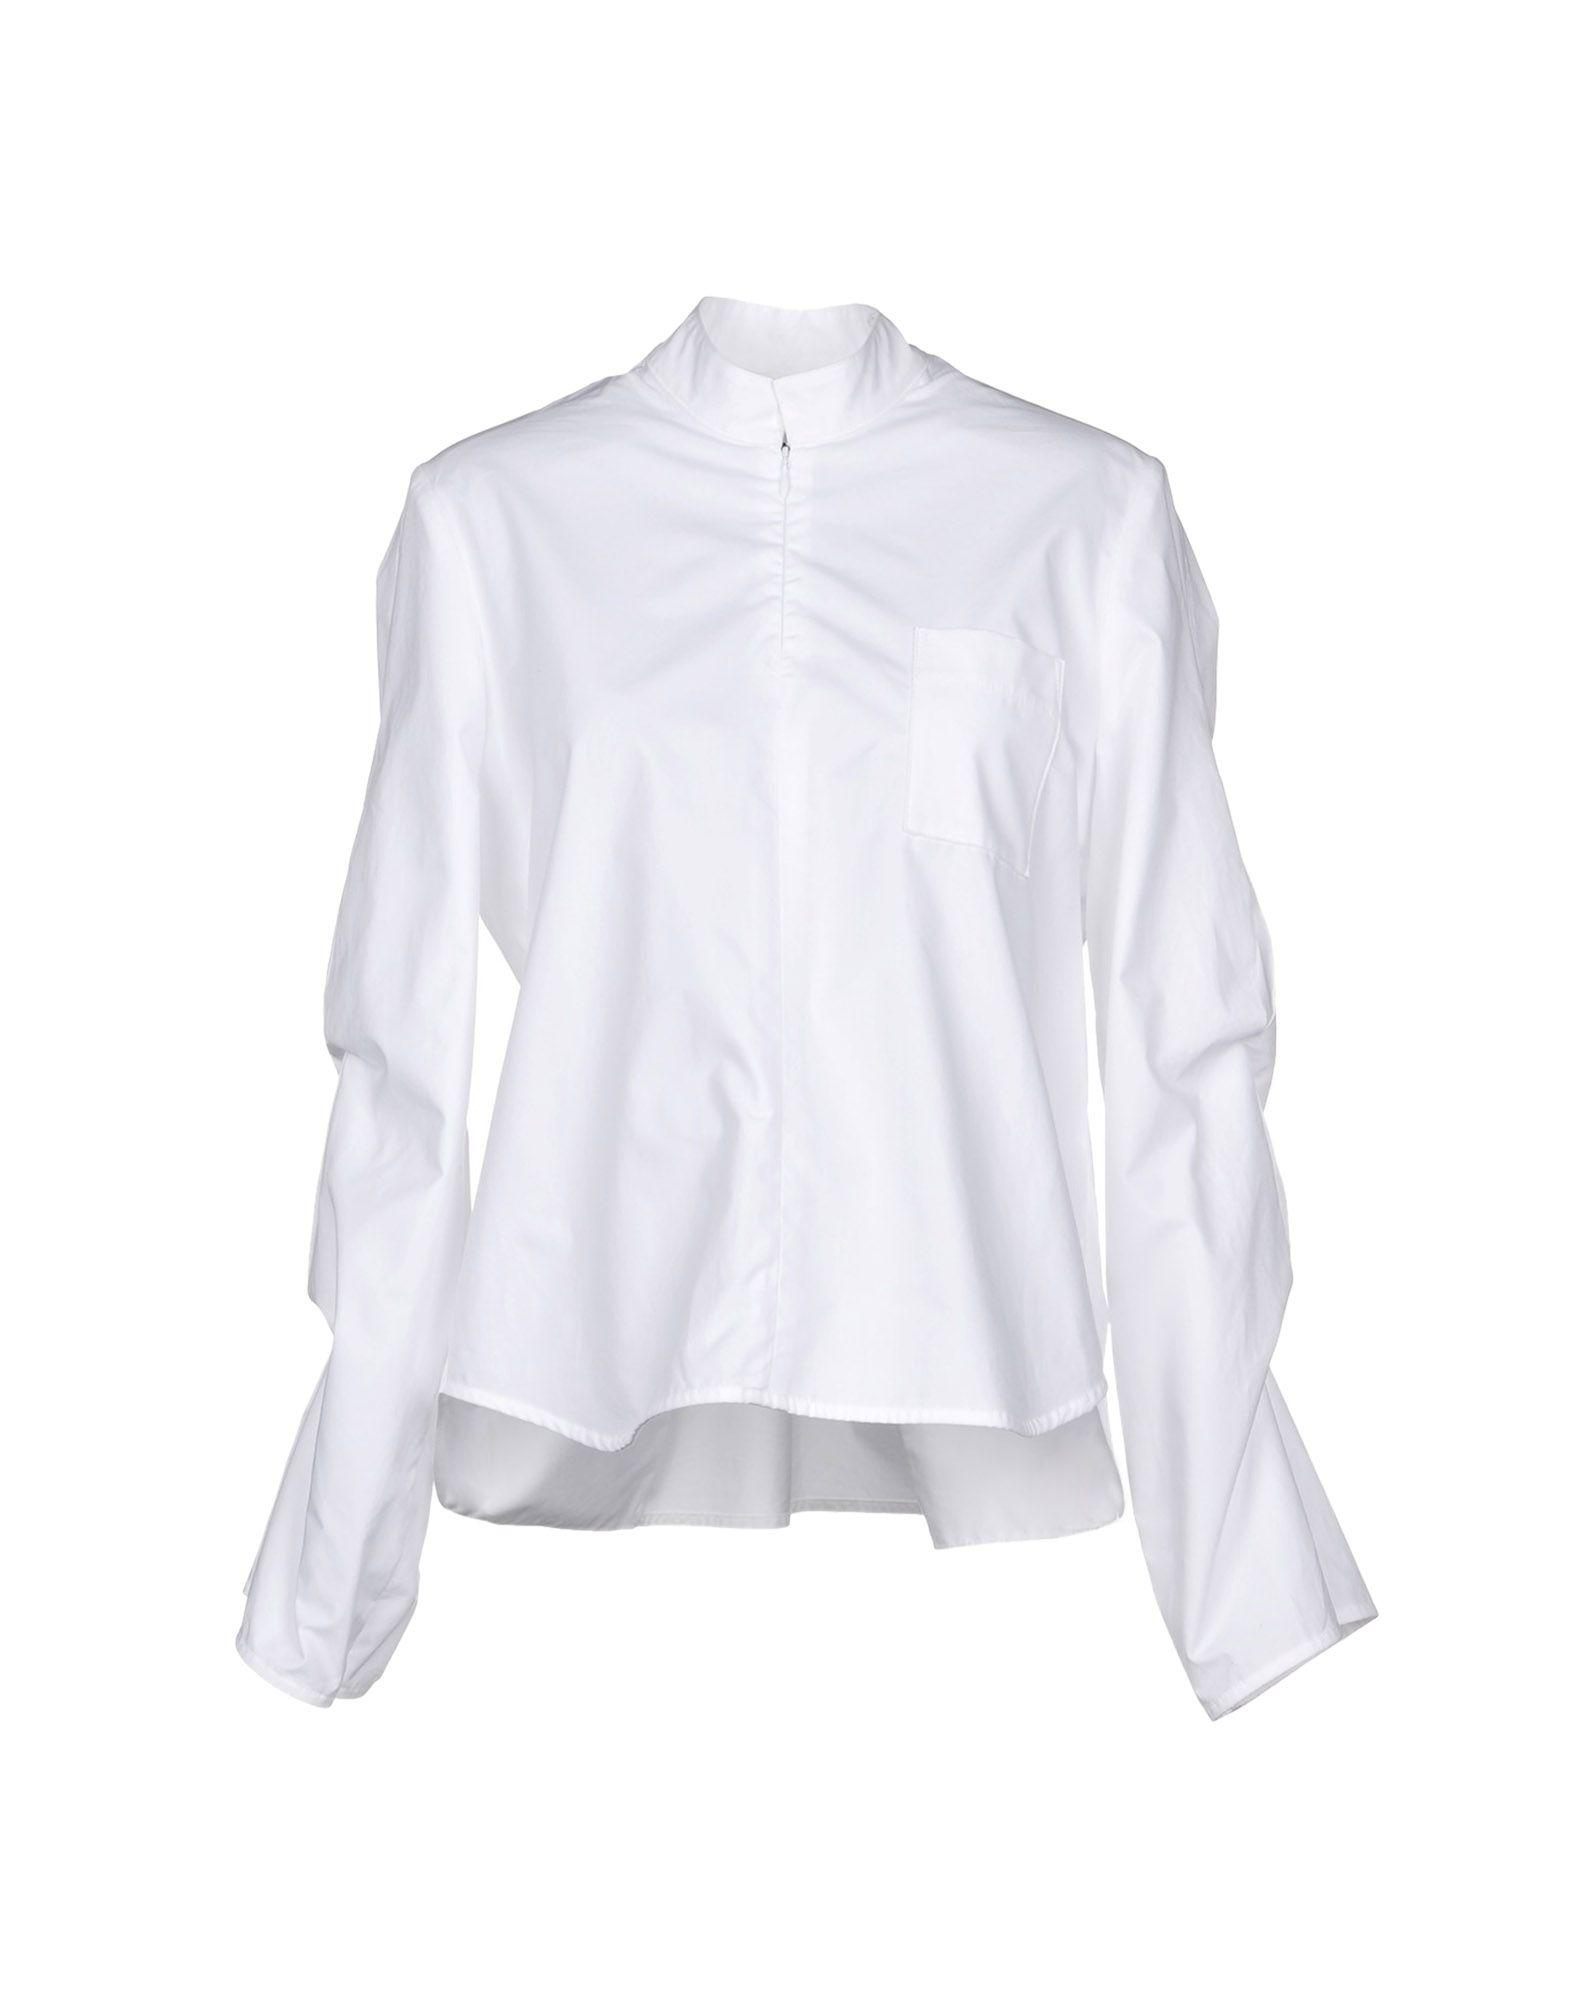 Vejas Blouse In White